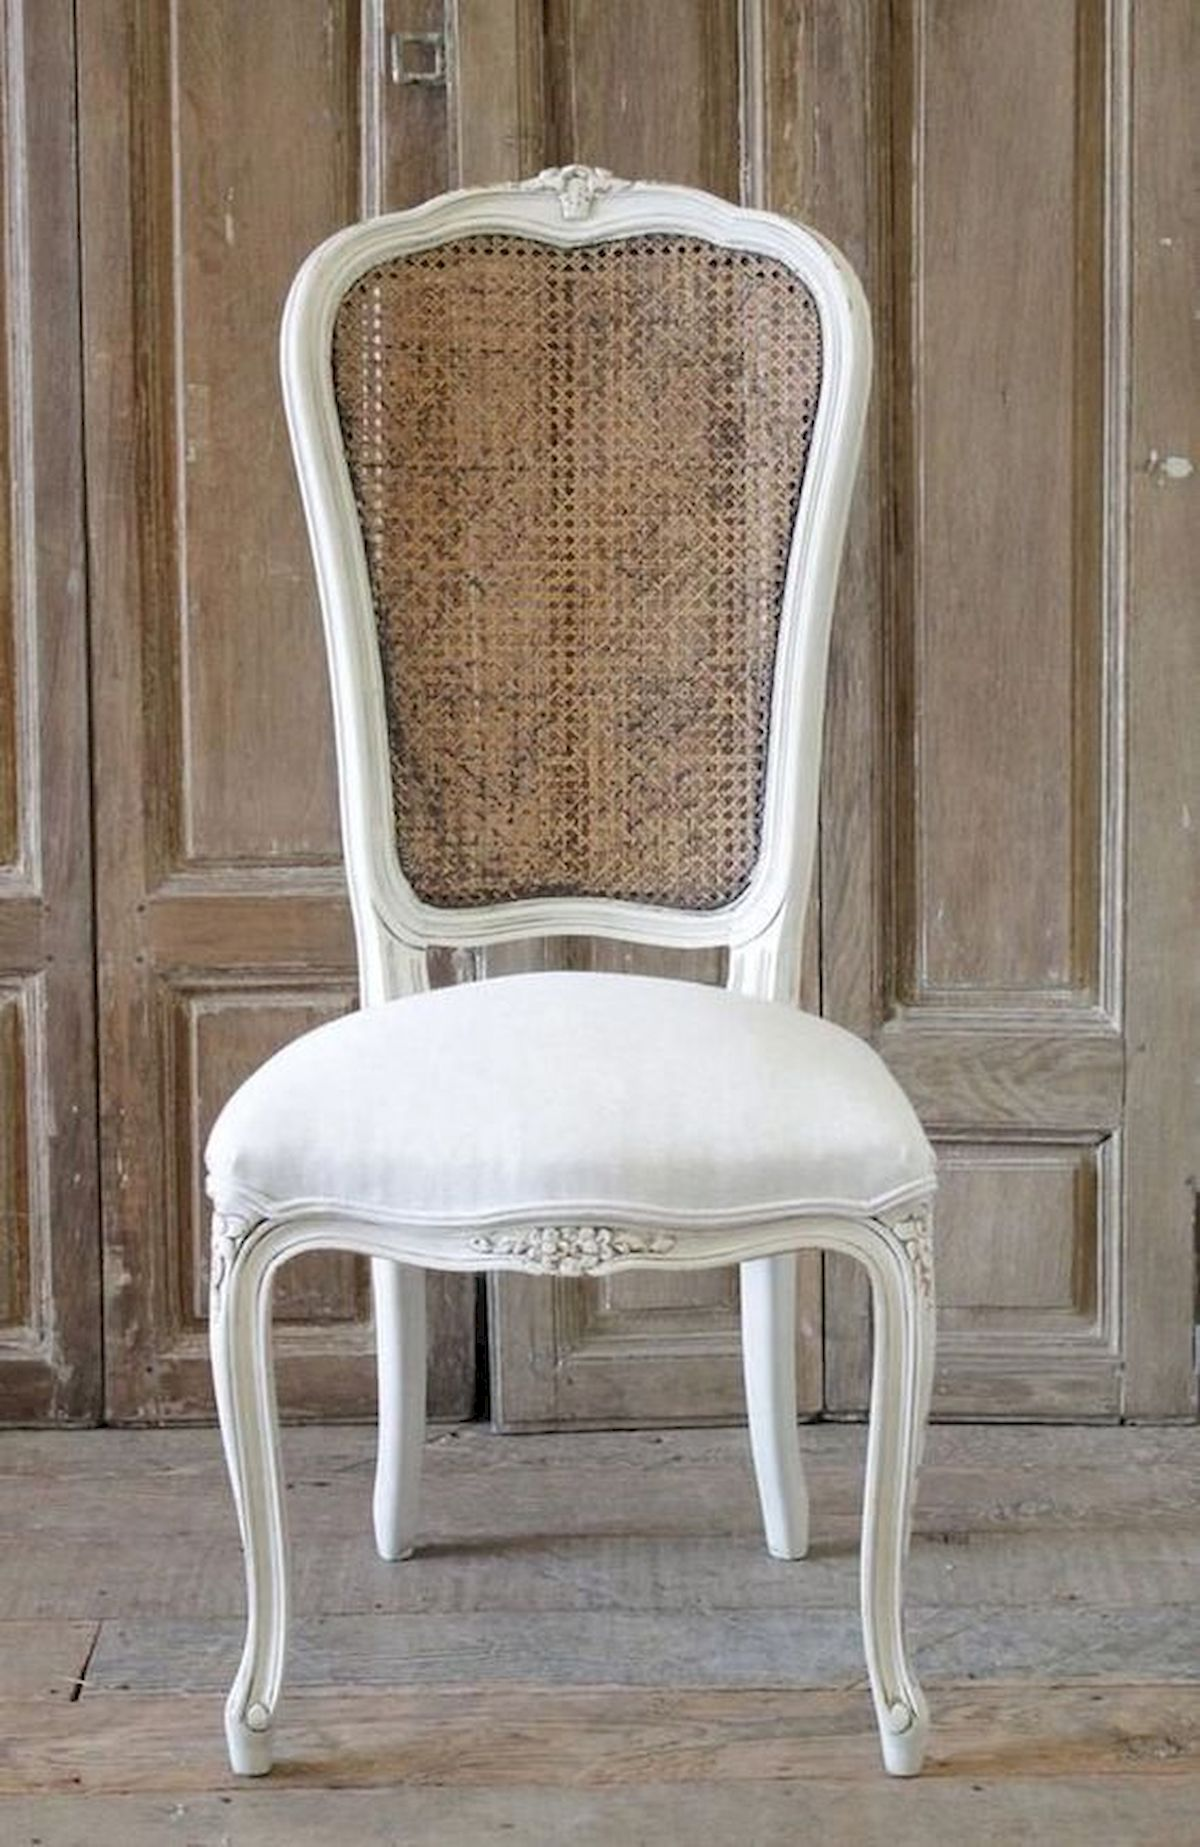 50 DIY Relaxing Chairs Design Ideas That Will Make Your Home Look Great (32)